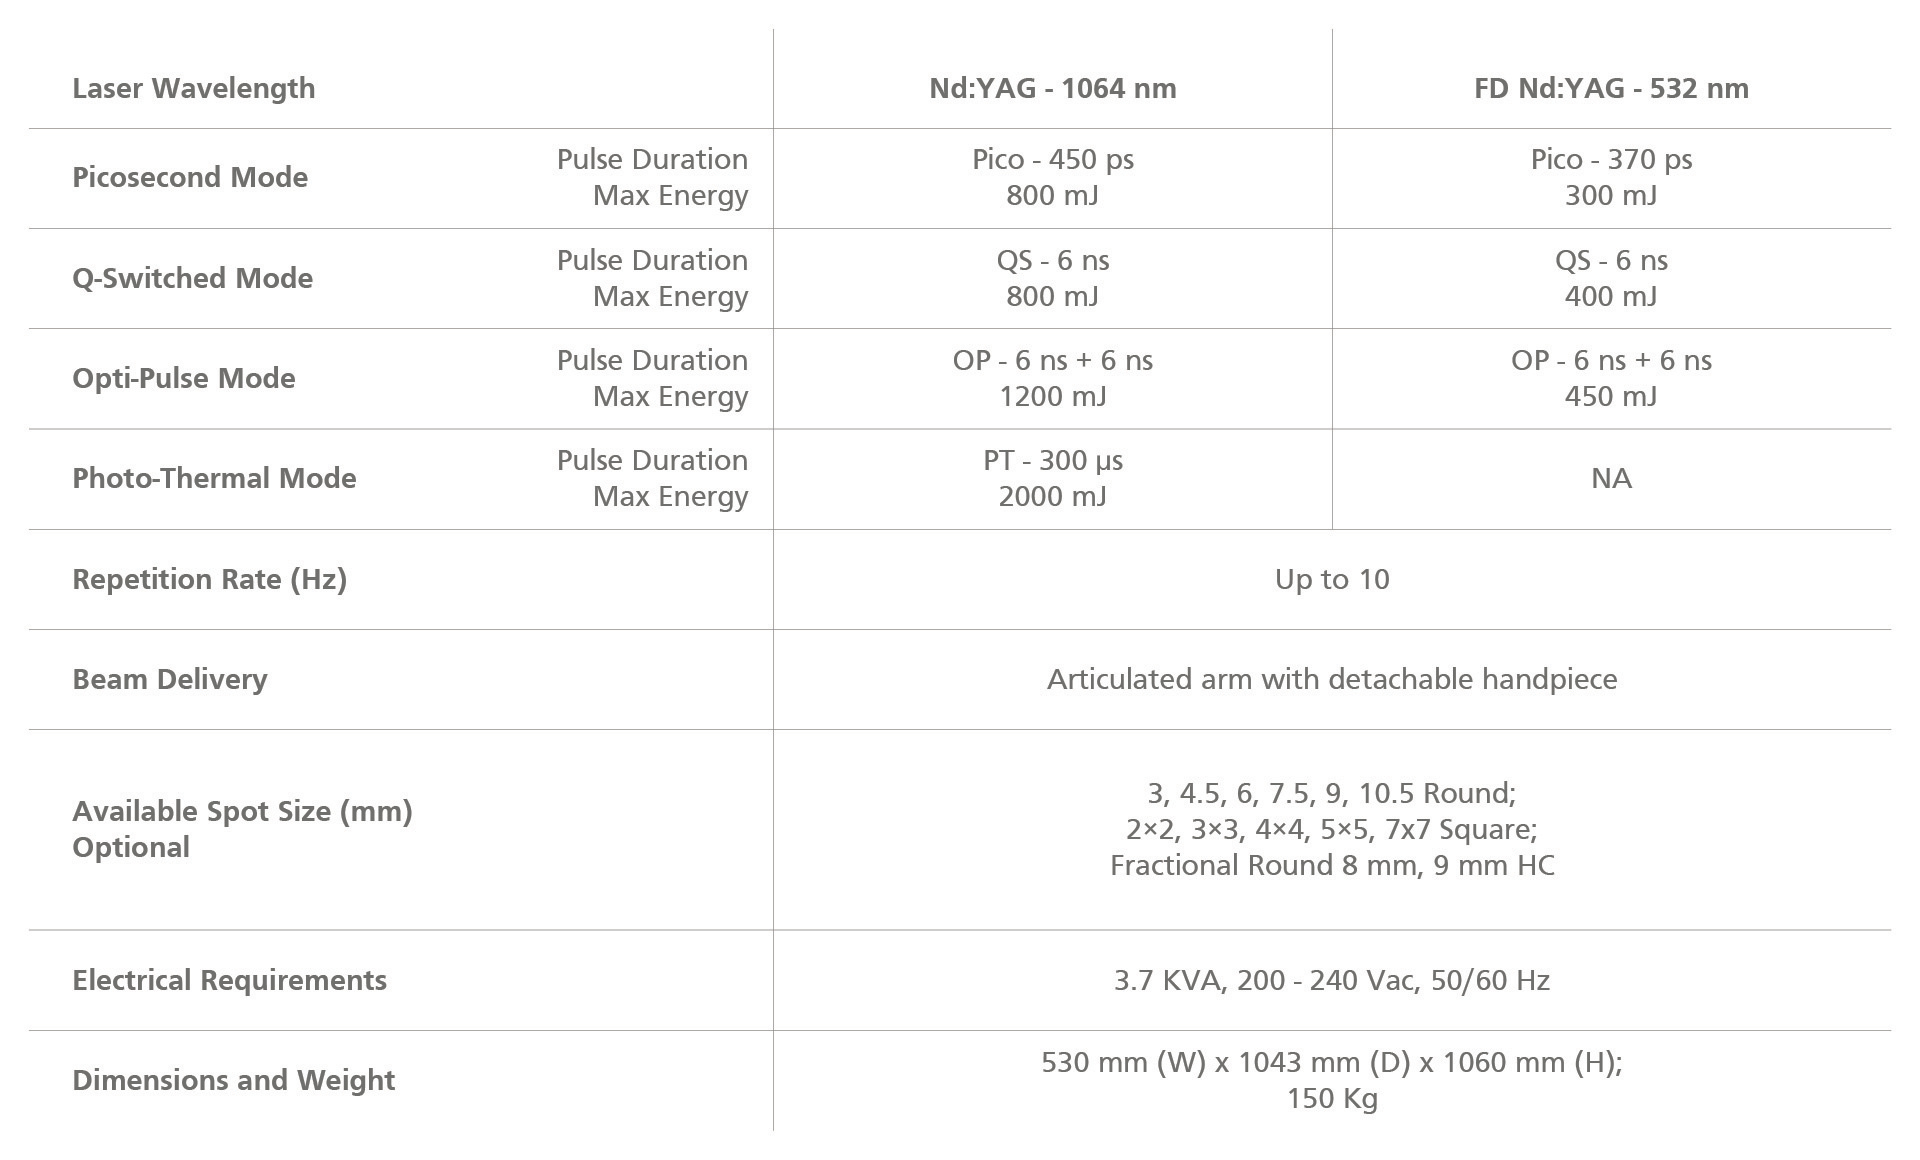 Discovery Pico Model Technical Specifications